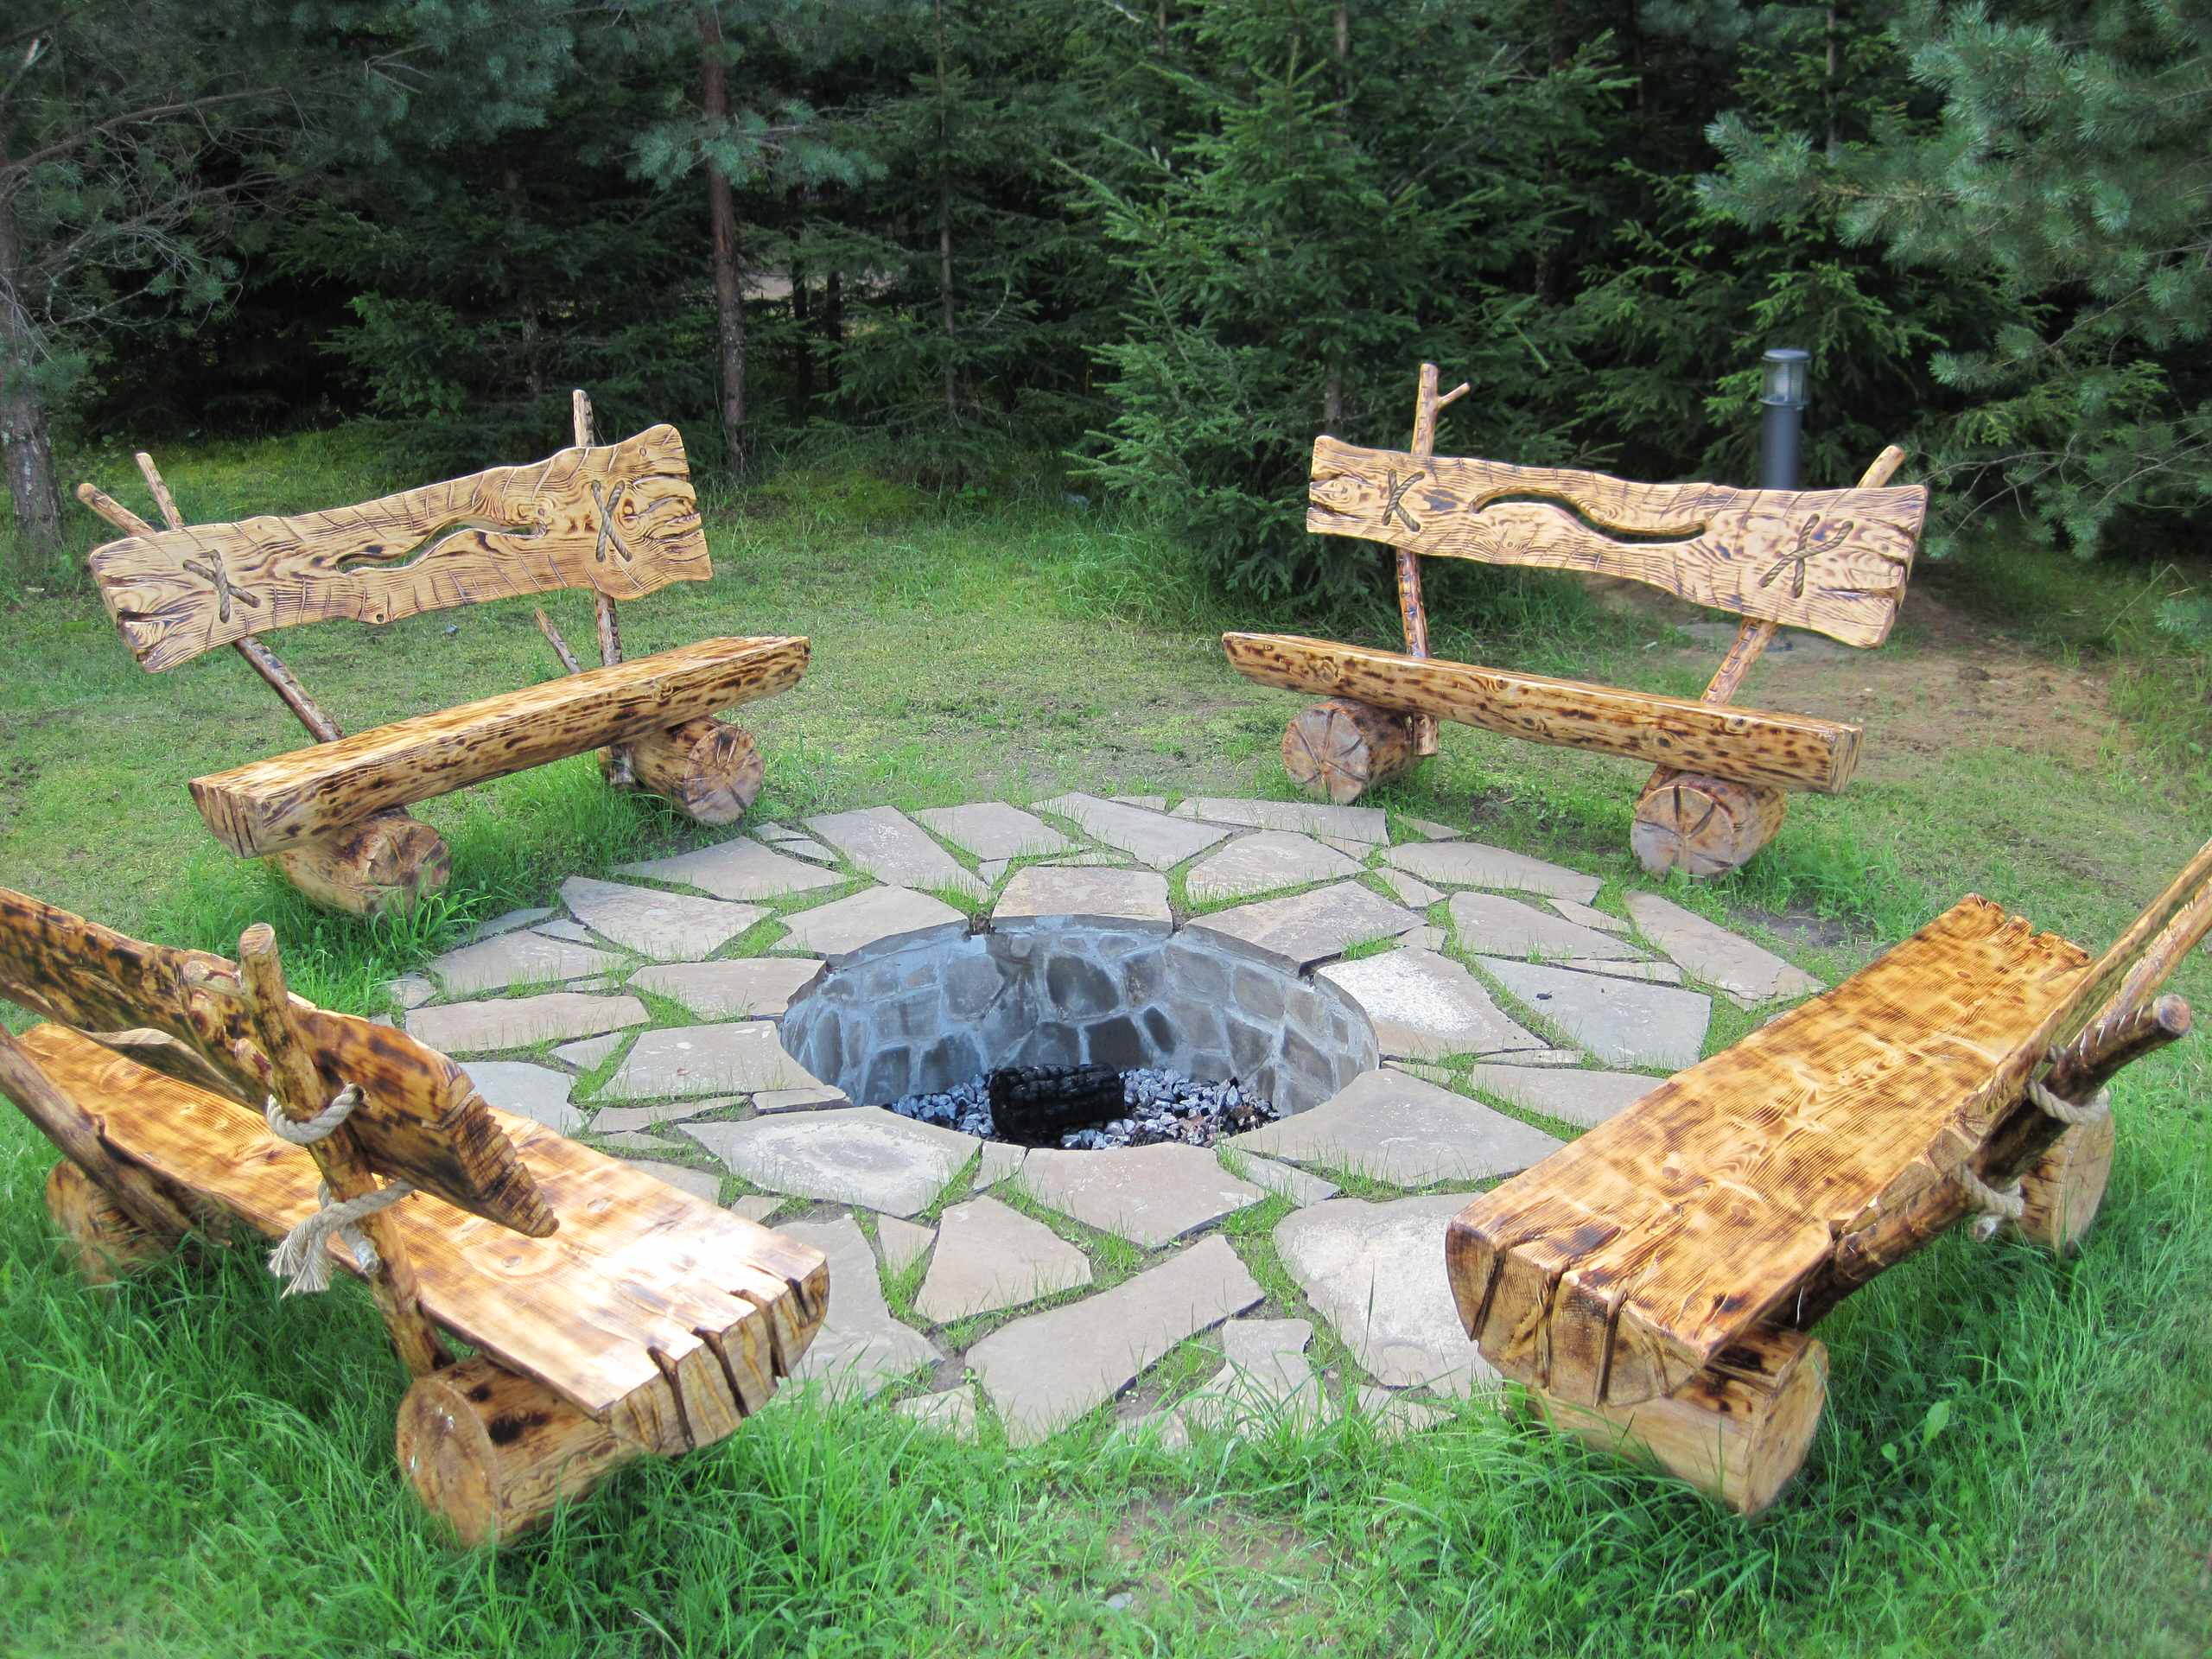 15 Stunning Rustic Landscape Designs That Will Take Your ... on Rustic Backyard Ideas id=41232